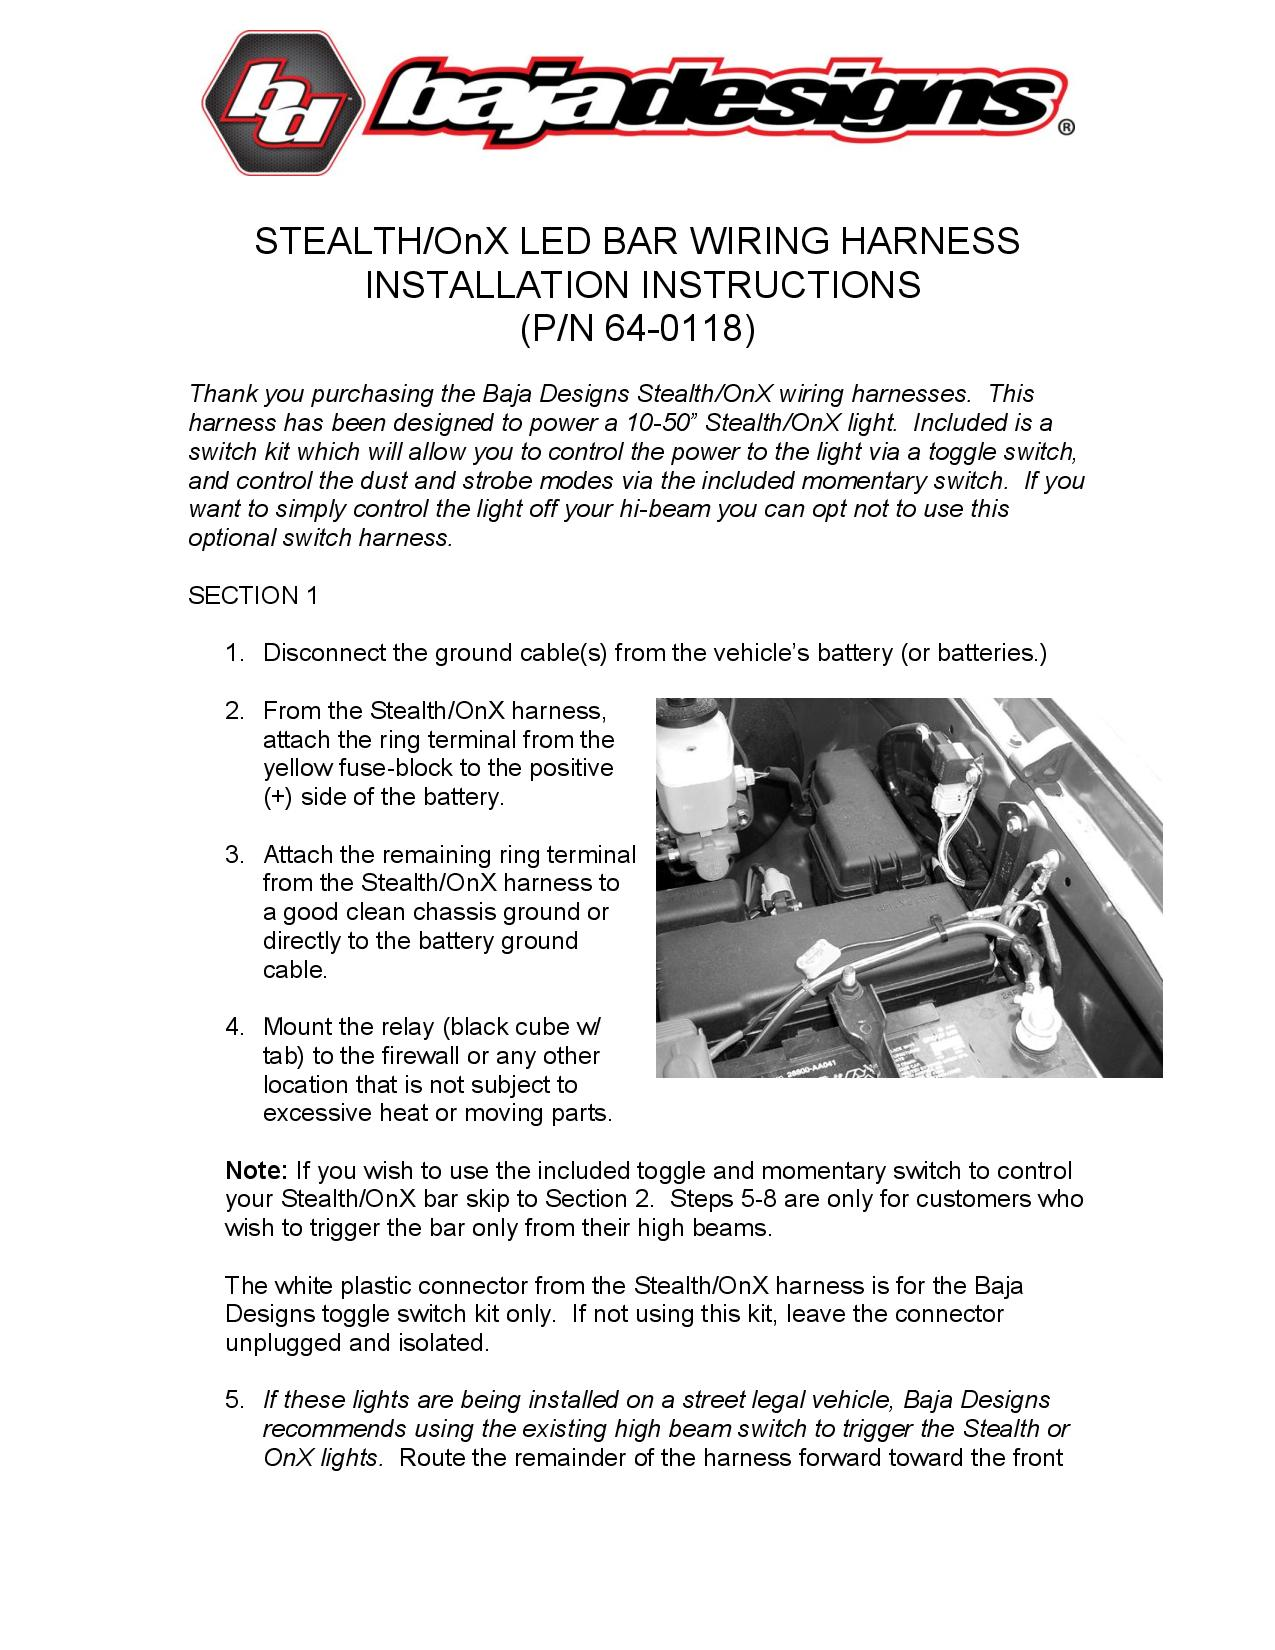 OnX Wiring Harness 64 0118.pdf page 001?quality=80&strip=all how to wire two led light bars to one switch led light bars lit up illuminator wiring harness instructions at panicattacktreatment.co